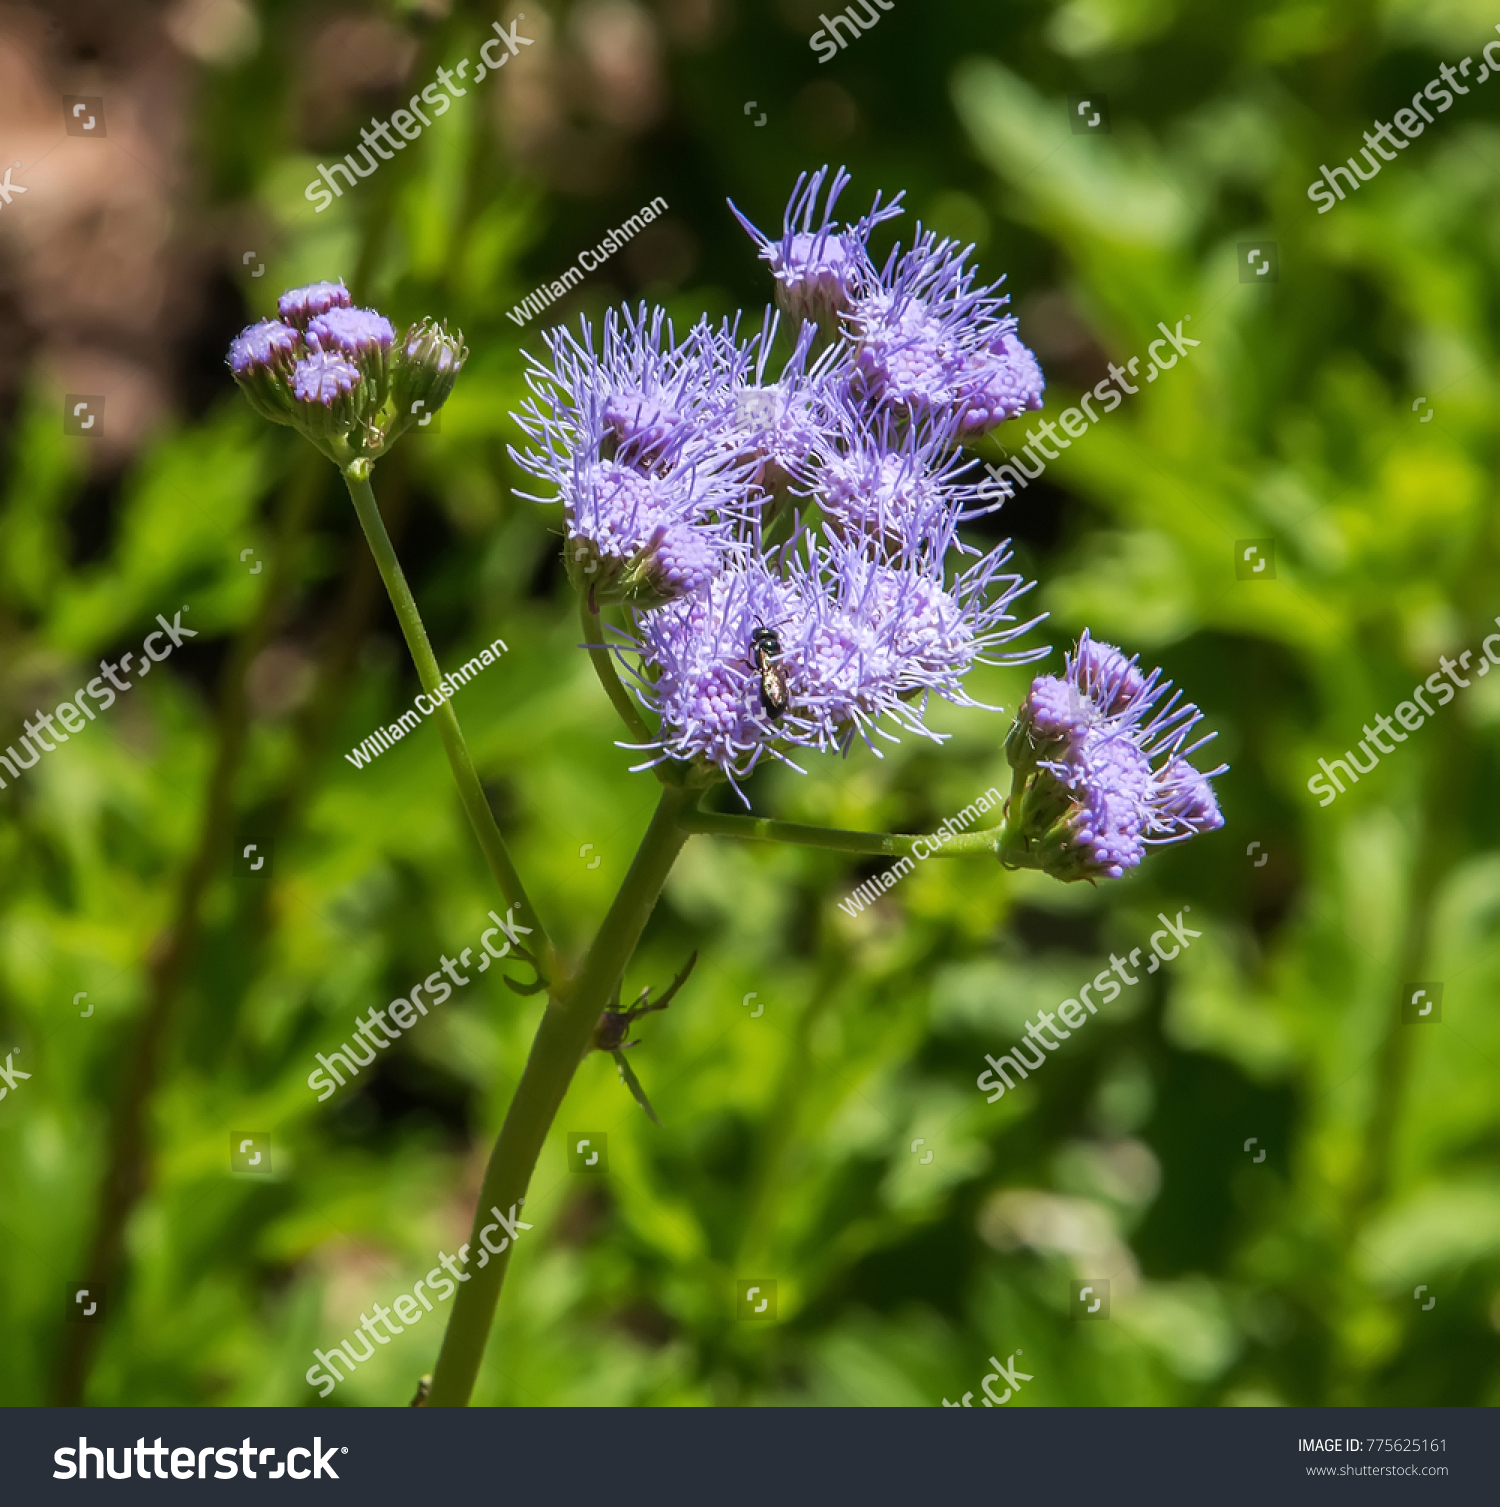 Blue mistflower also known as blue boneset ez canvas id 775625161 izmirmasajfo